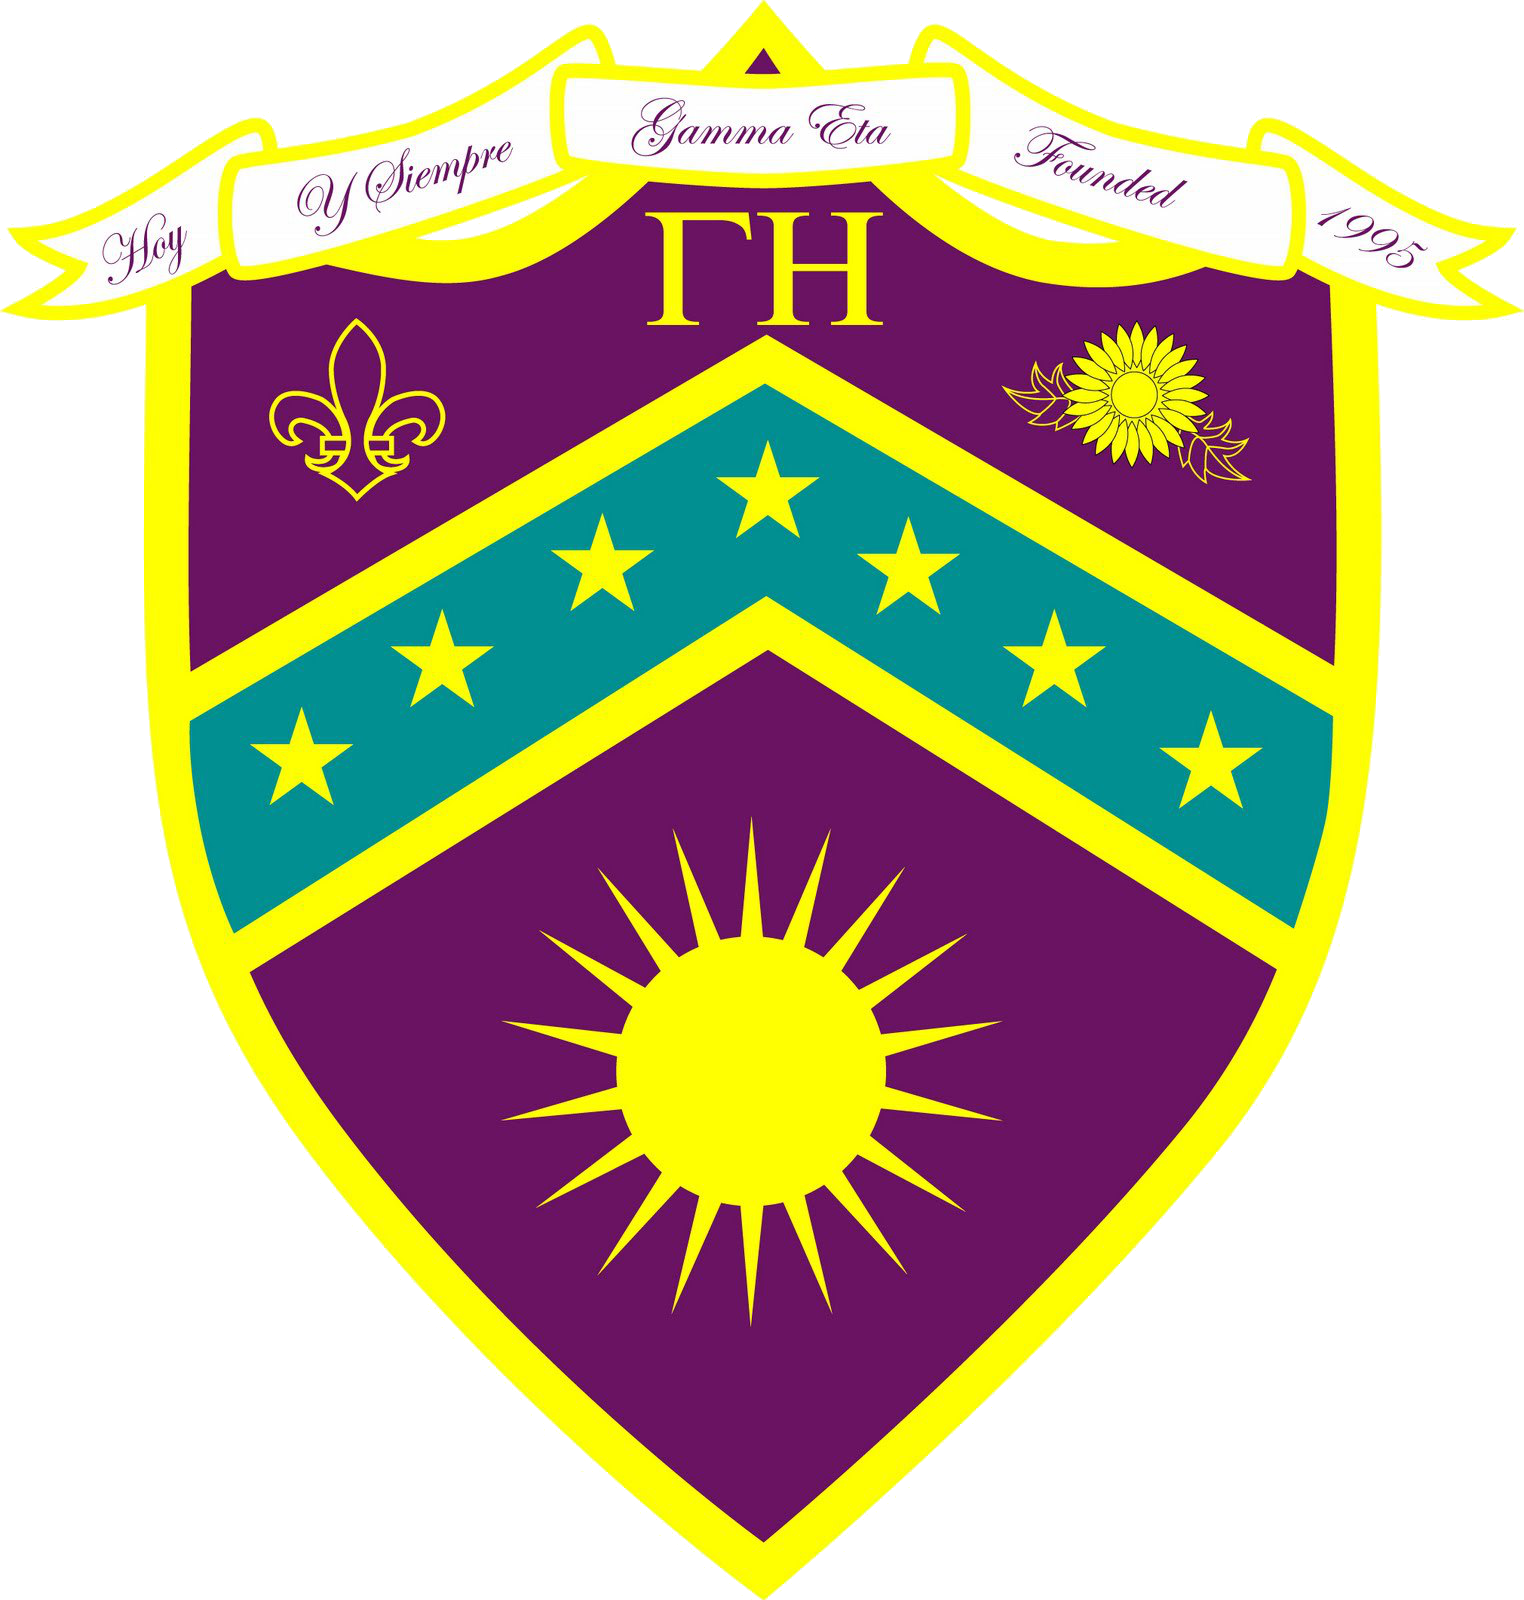 Gamma Eta Sorority, Inc. Shield